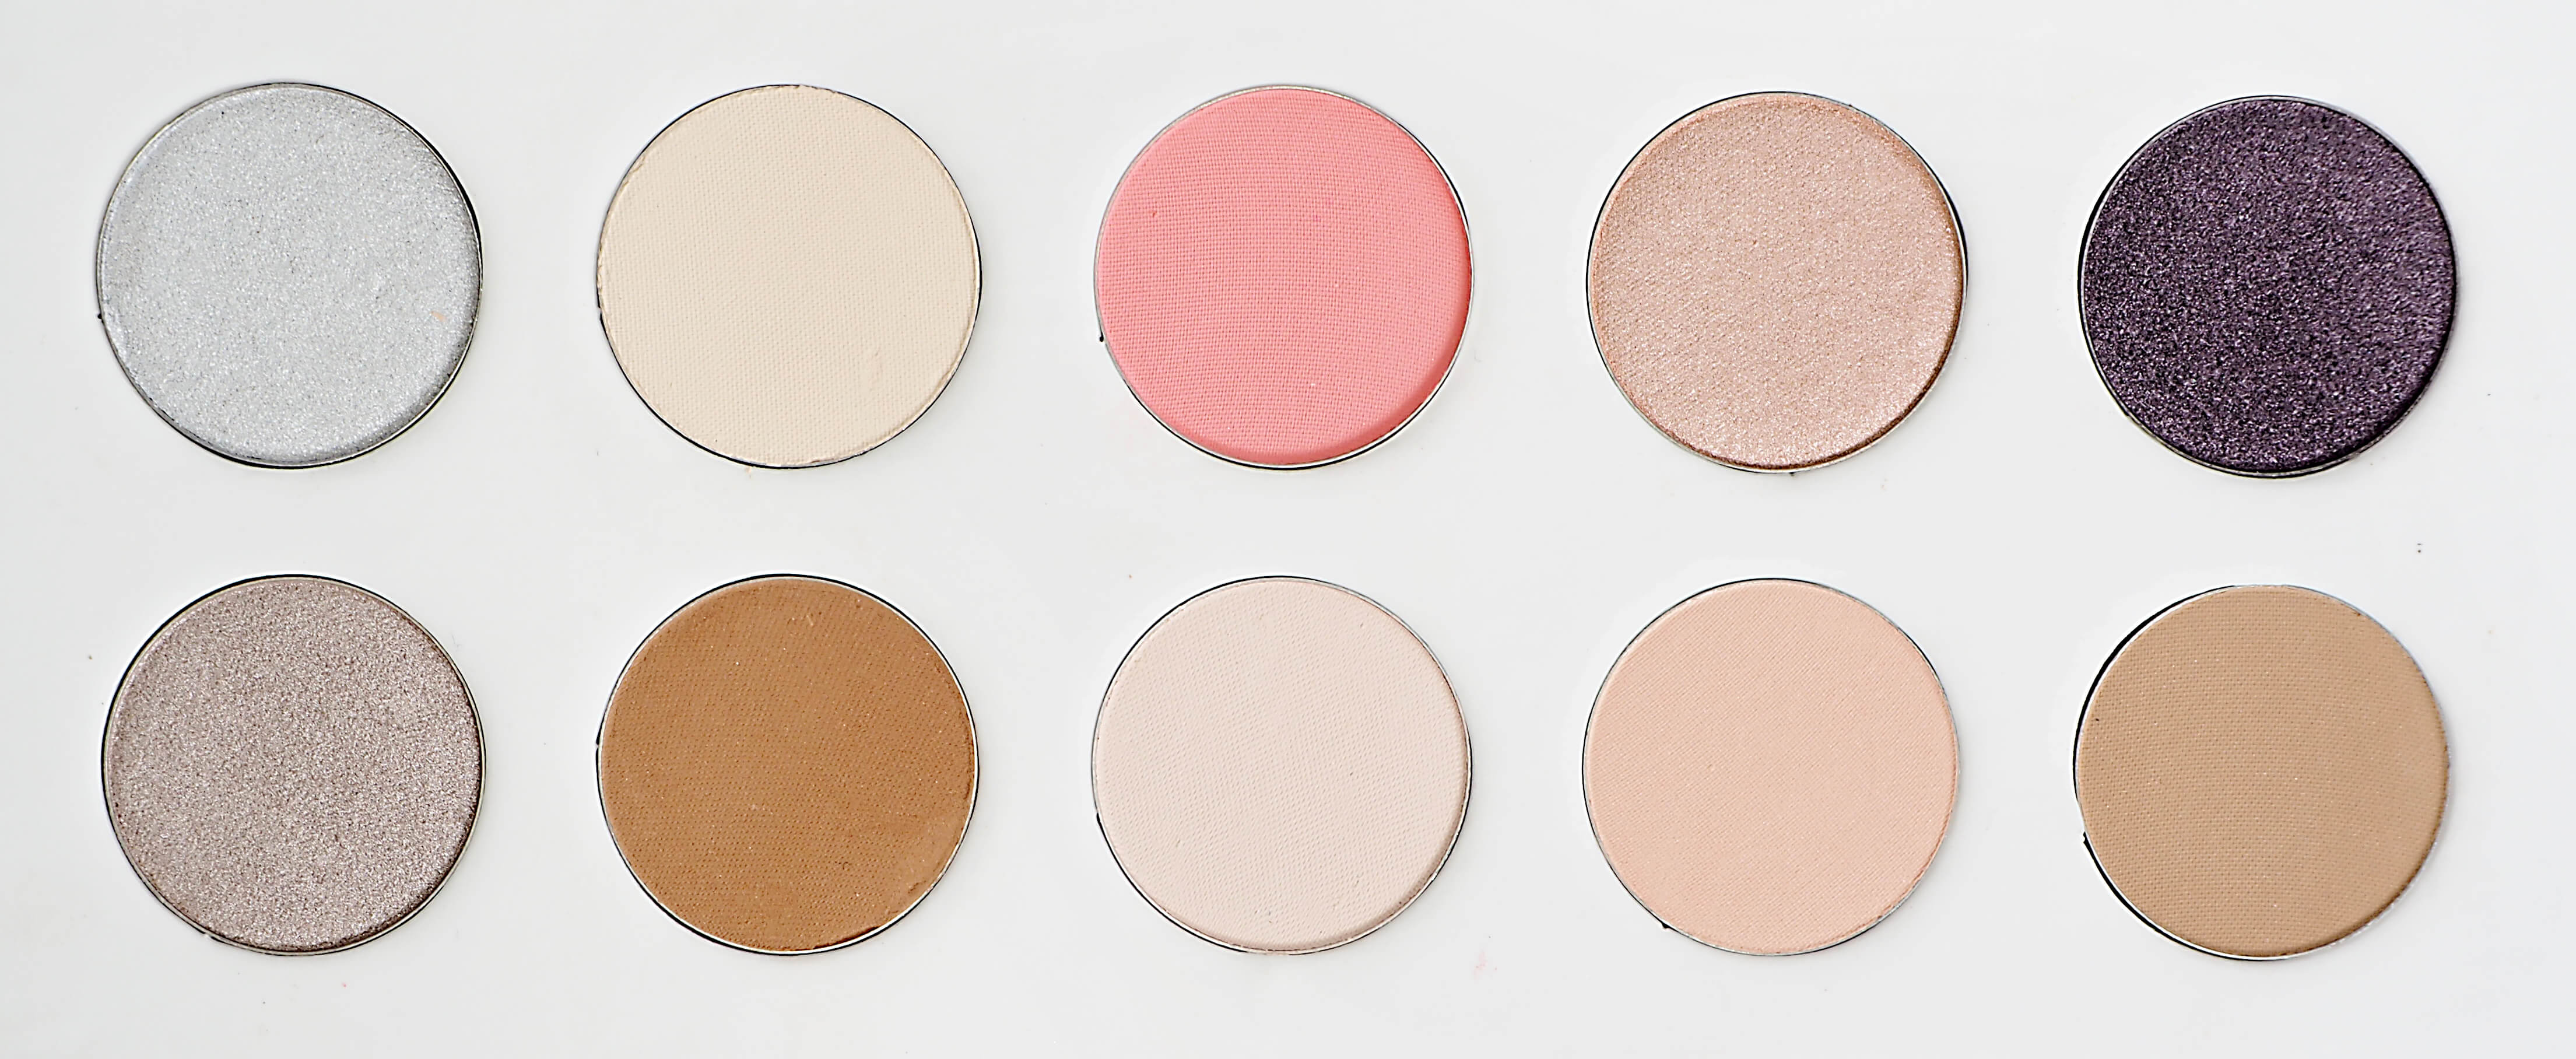 Kolory AFFECT Nude By Day paleta cieni